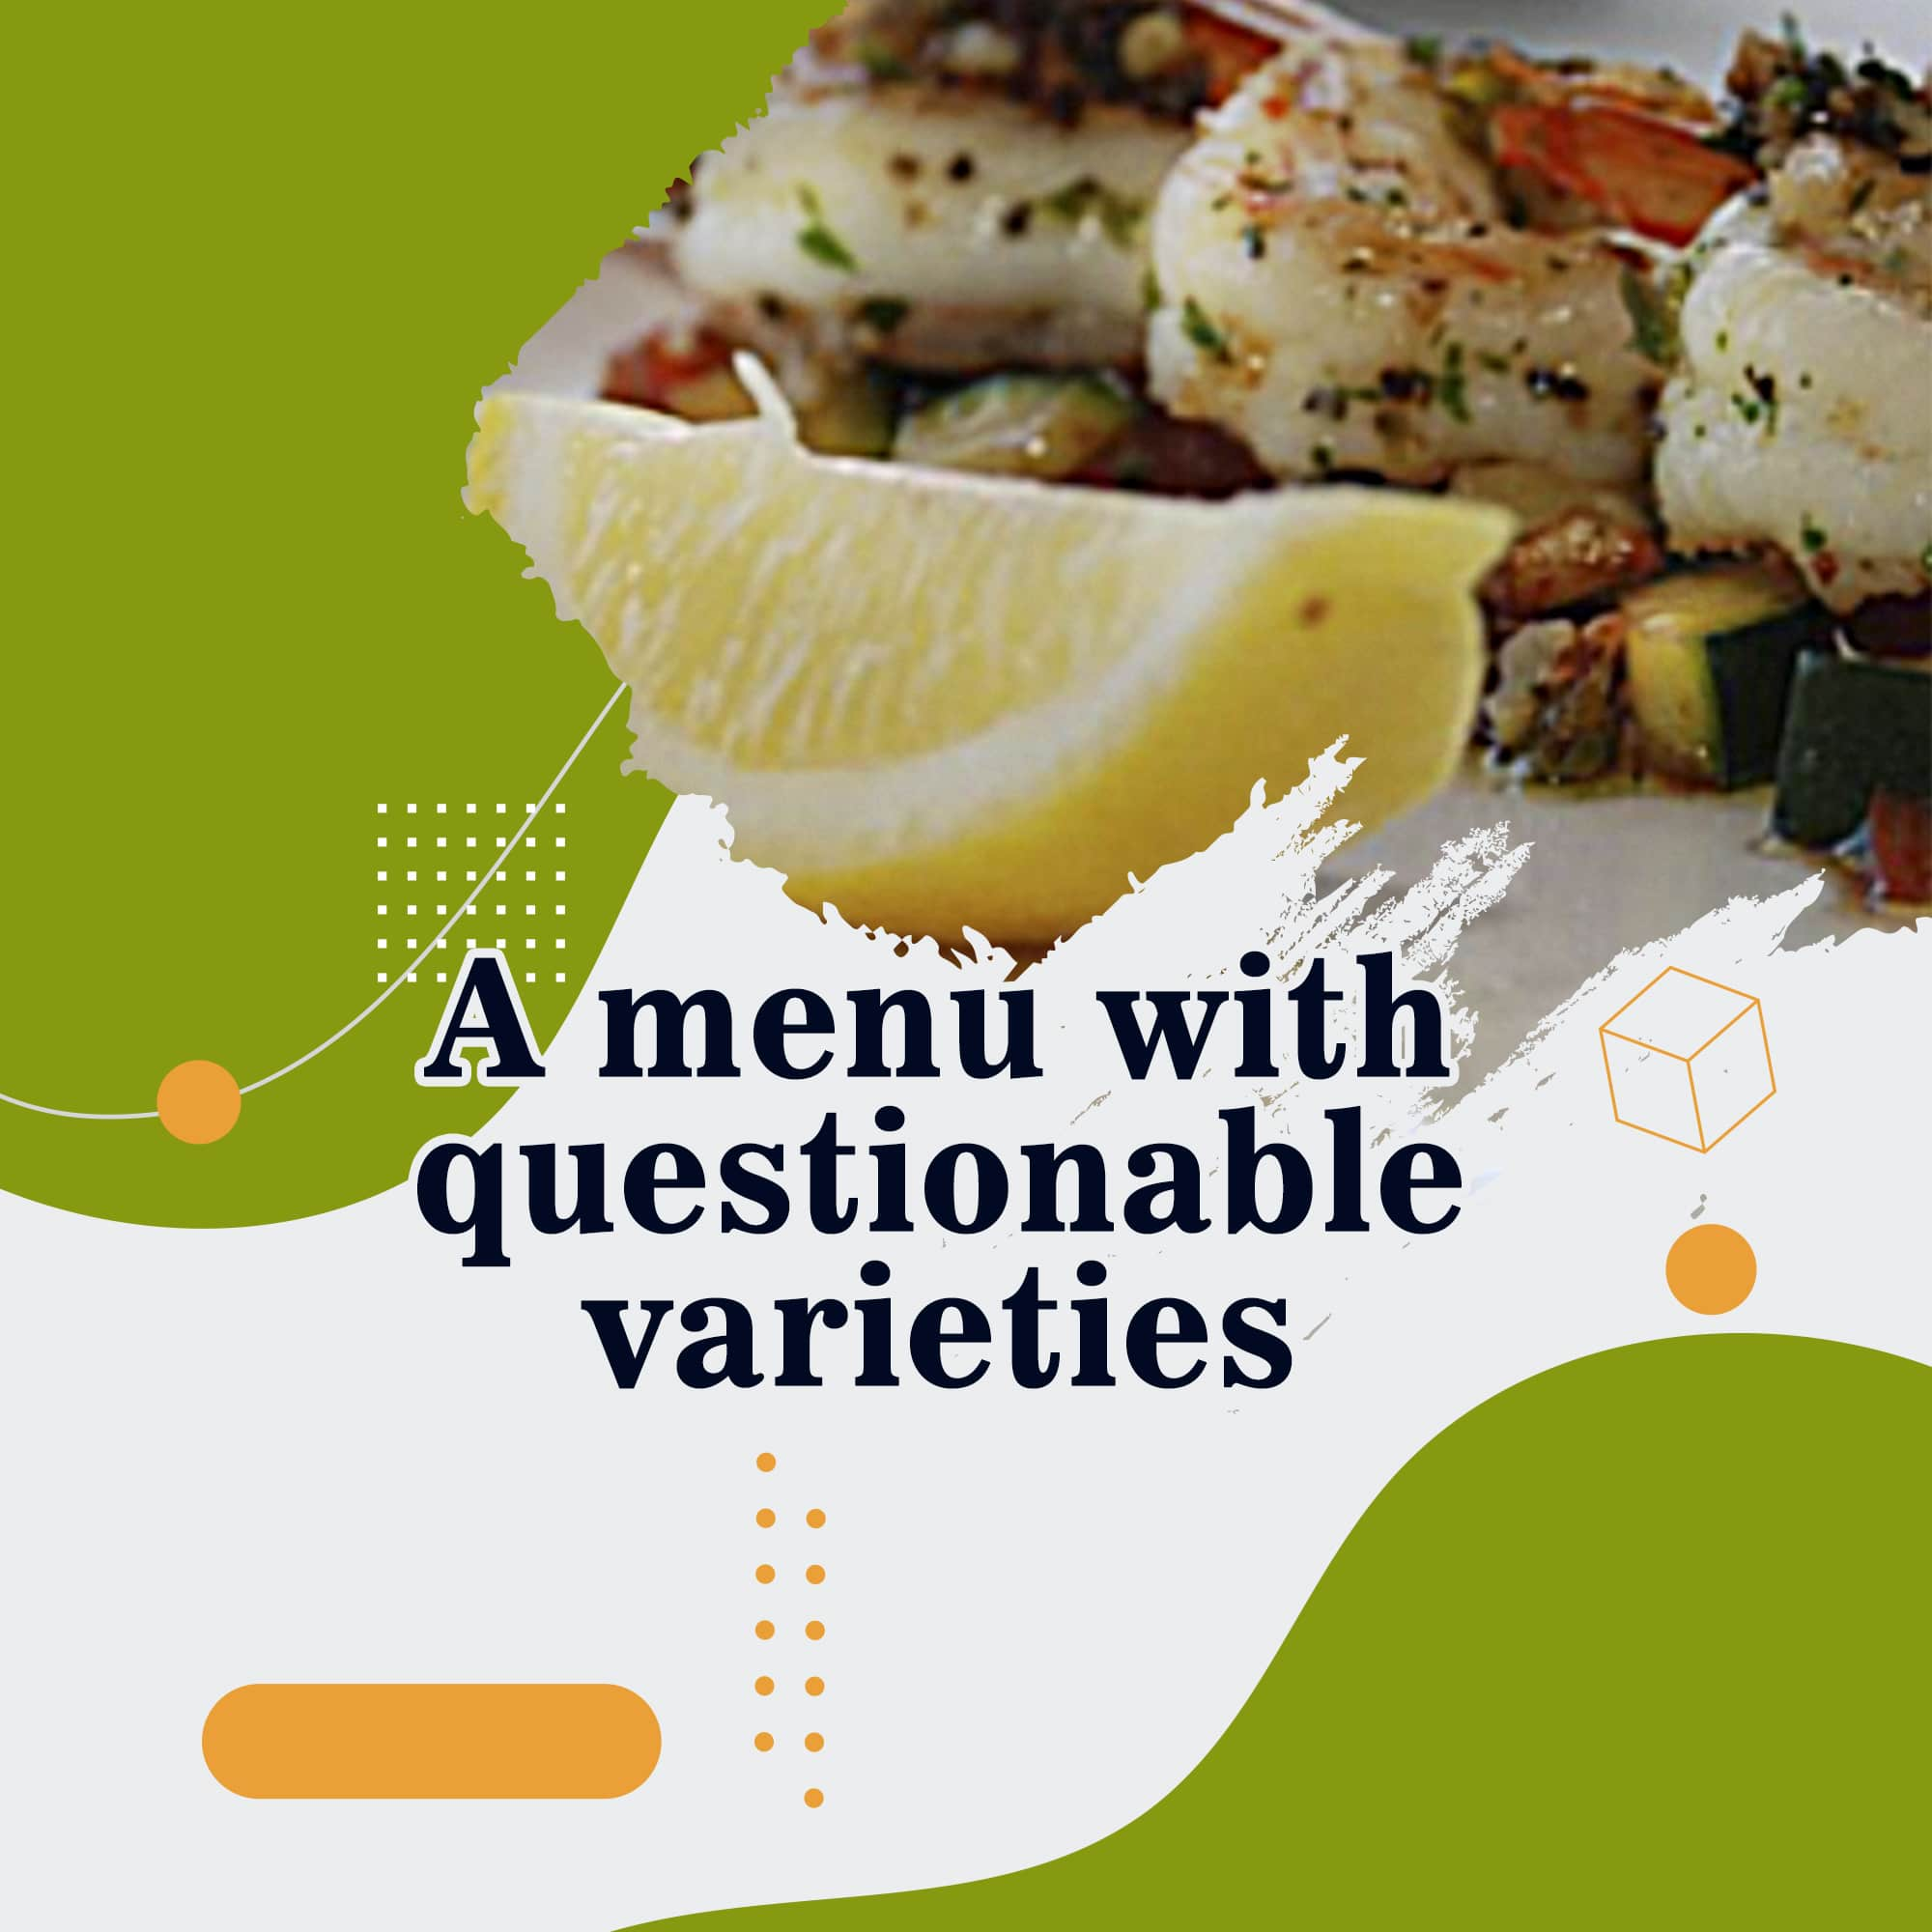 A menu with questionable varieties